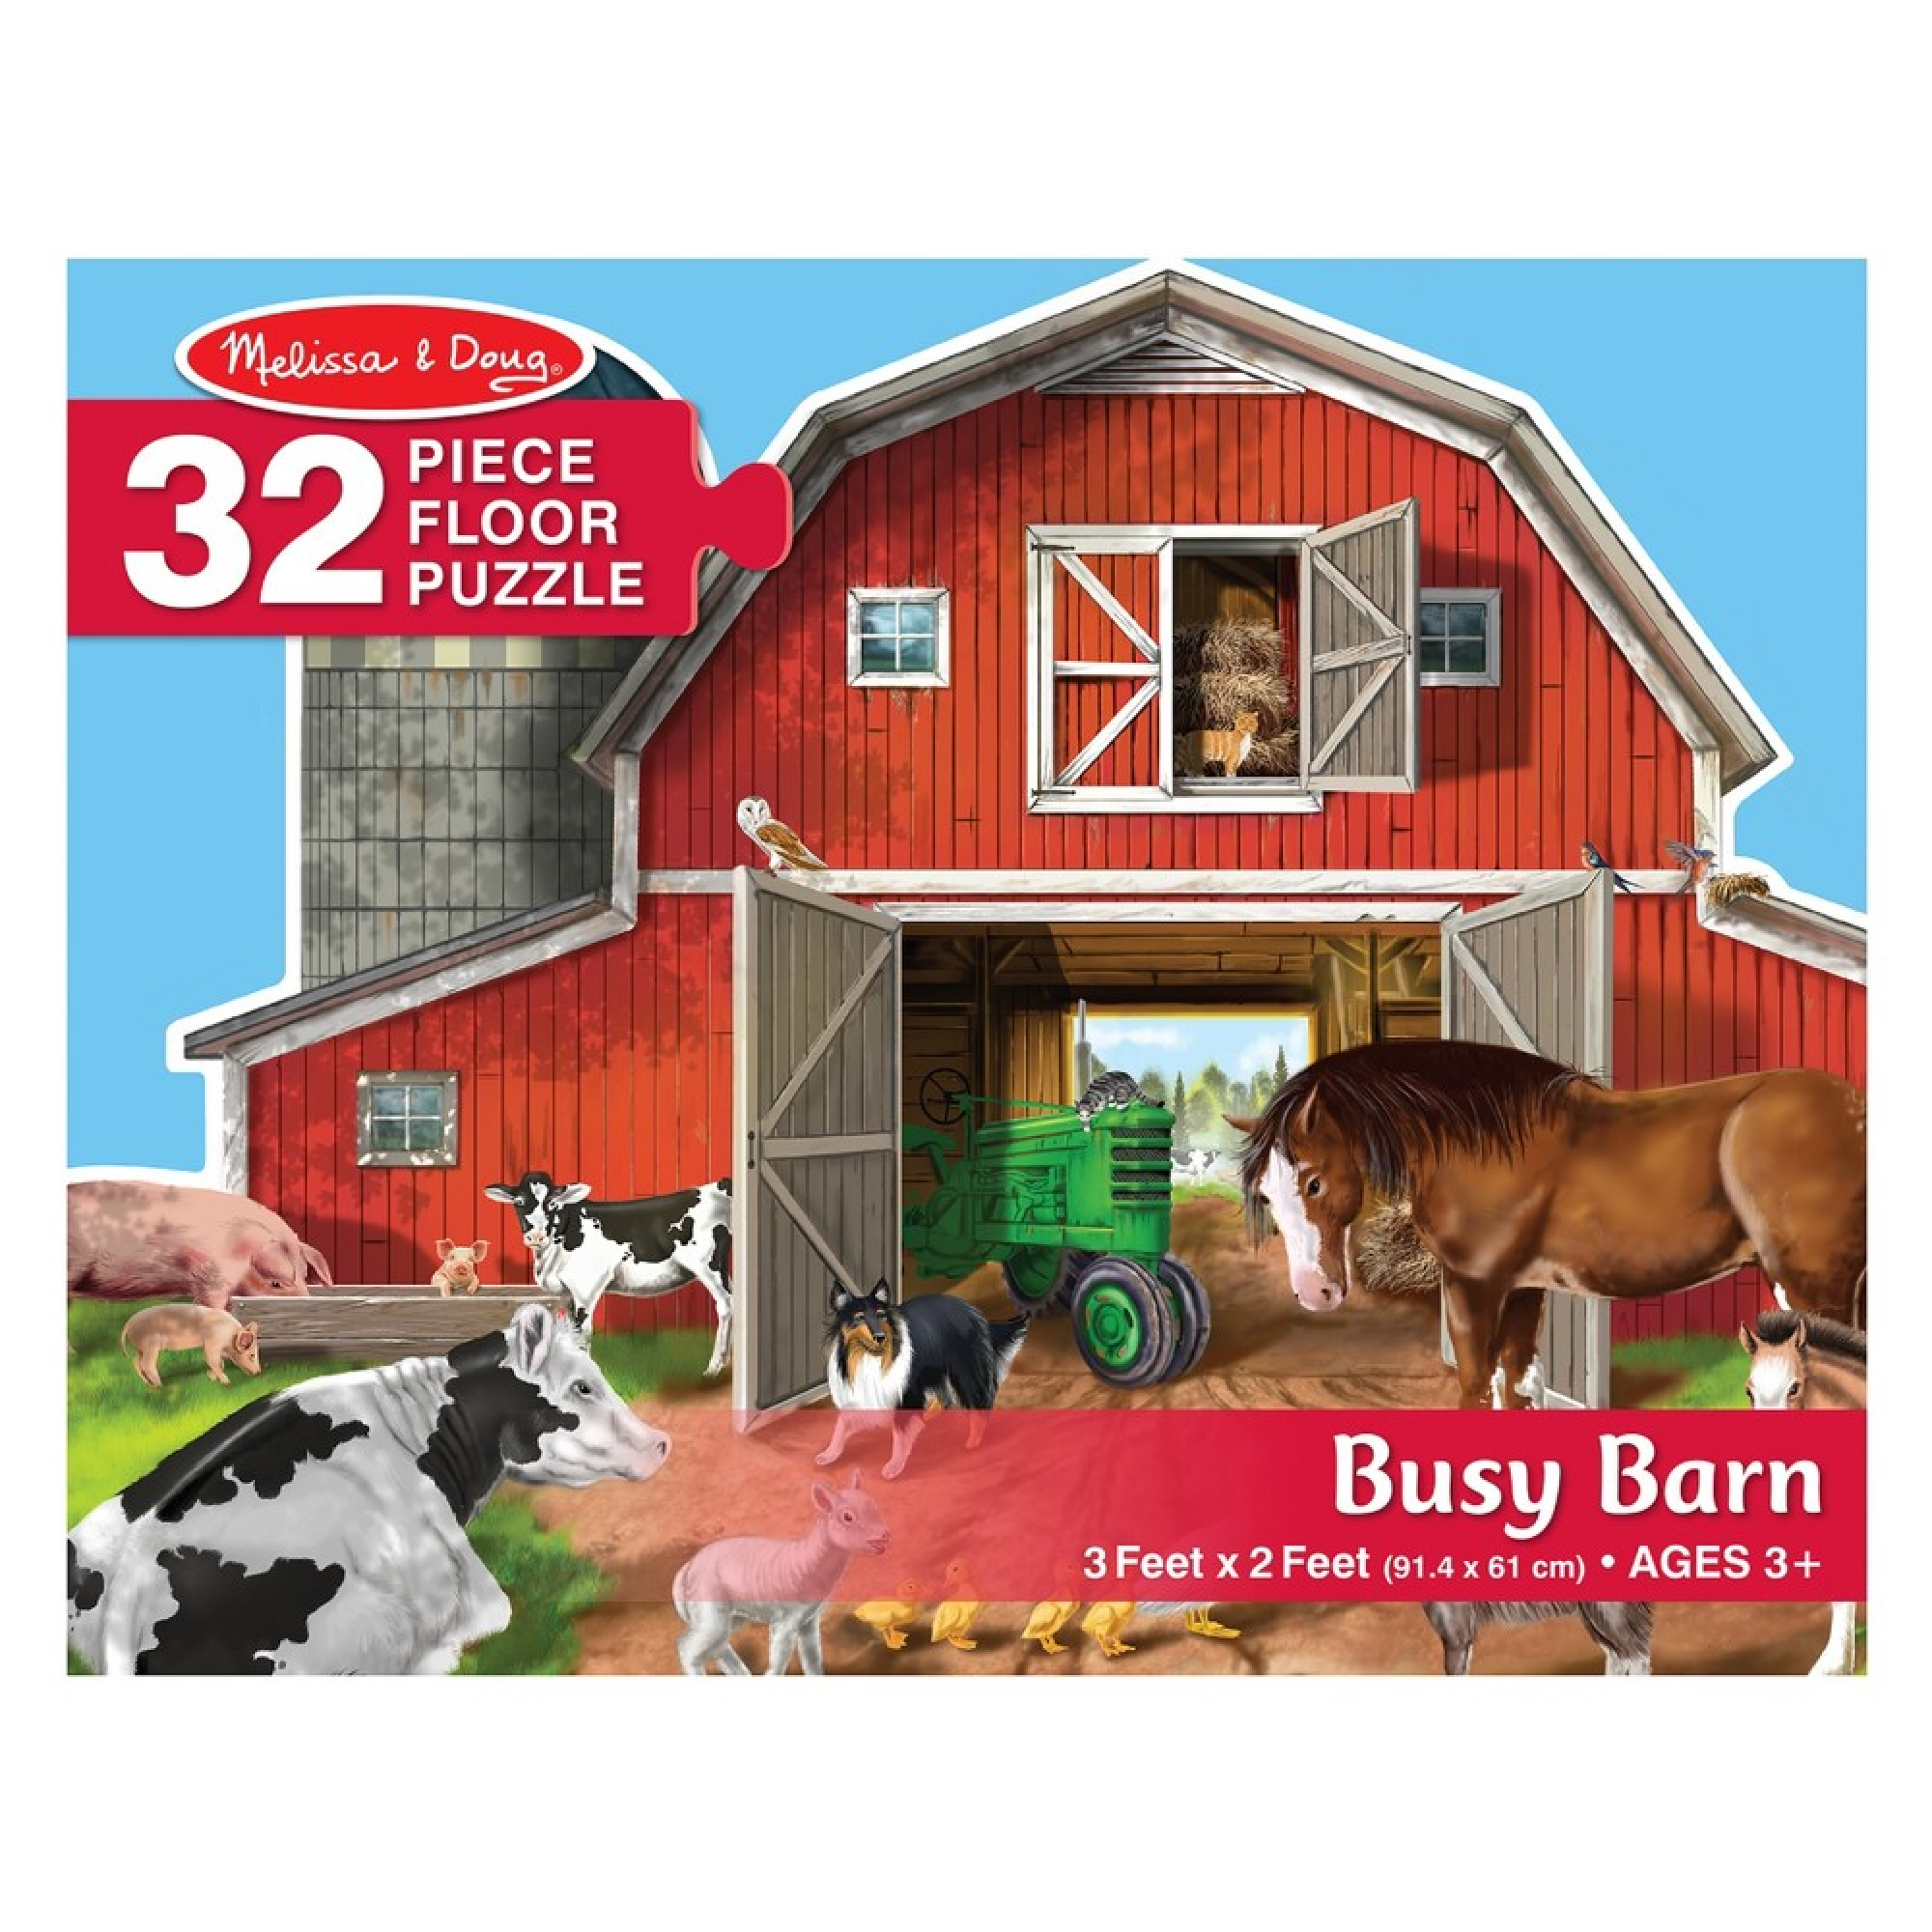 Melissa & Doug Puzzle plancher 32: Busy Barn Shaped